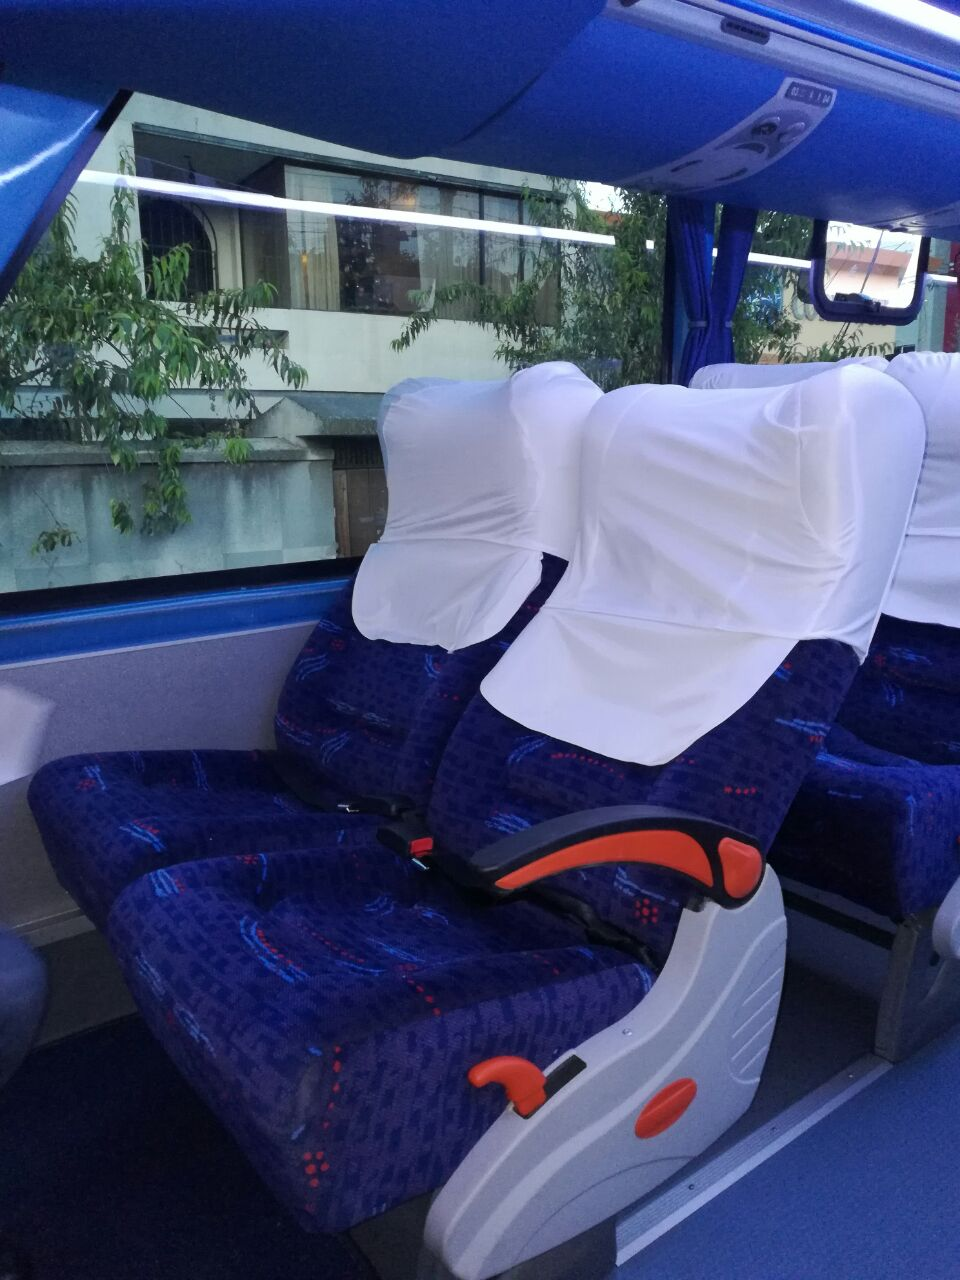 INTERIOR_BUS_45_PAX_AÑO_2018